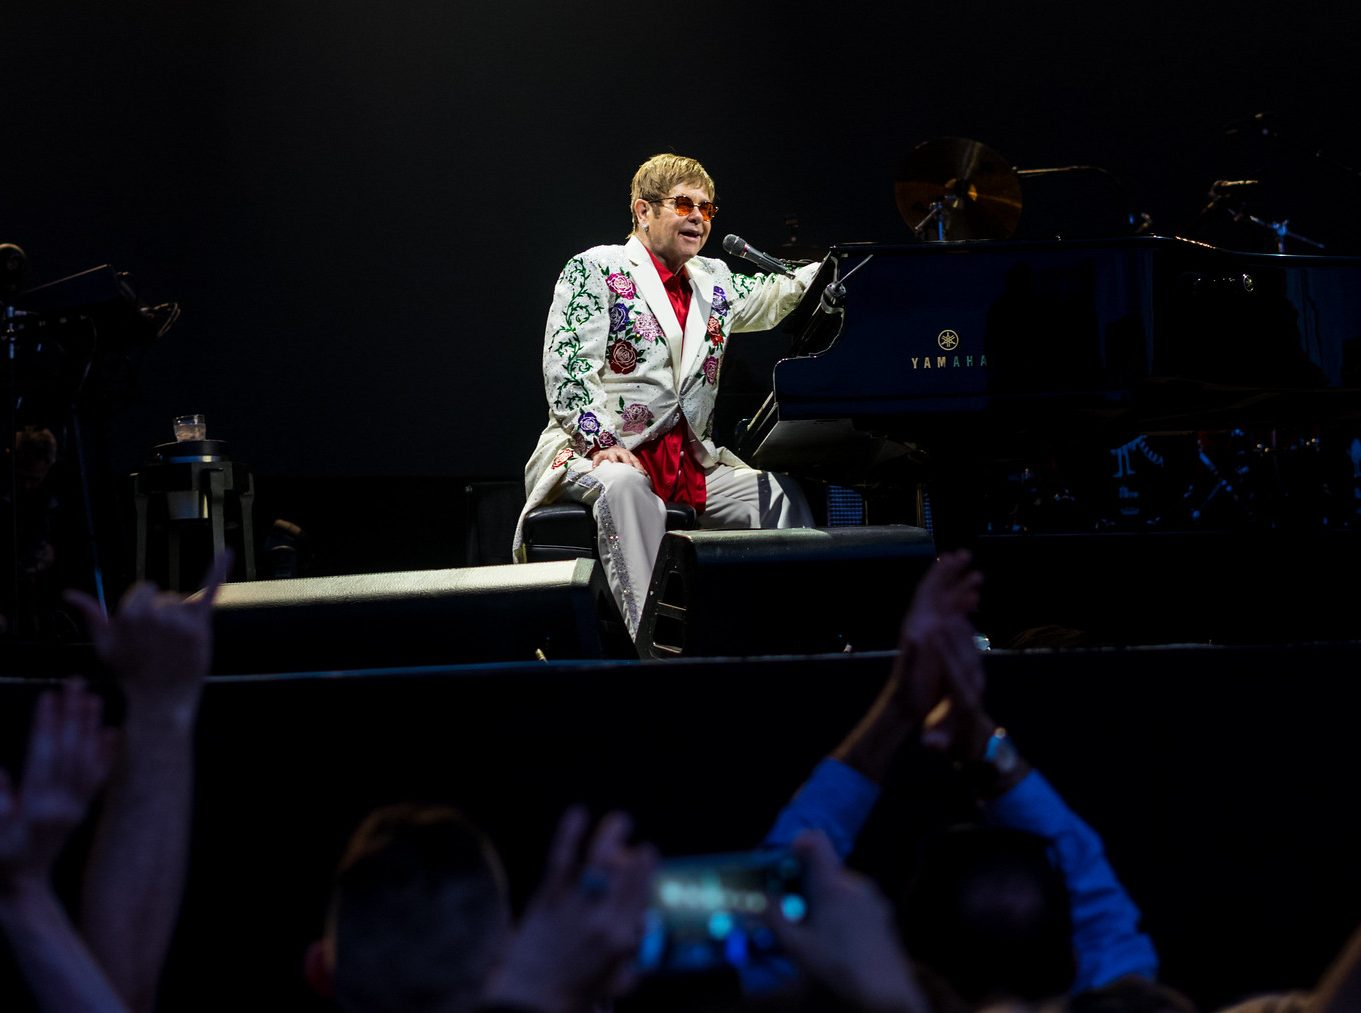 34287265723 88199c83bf k e1616671572515 23 Things You Didn't Know About Elton John